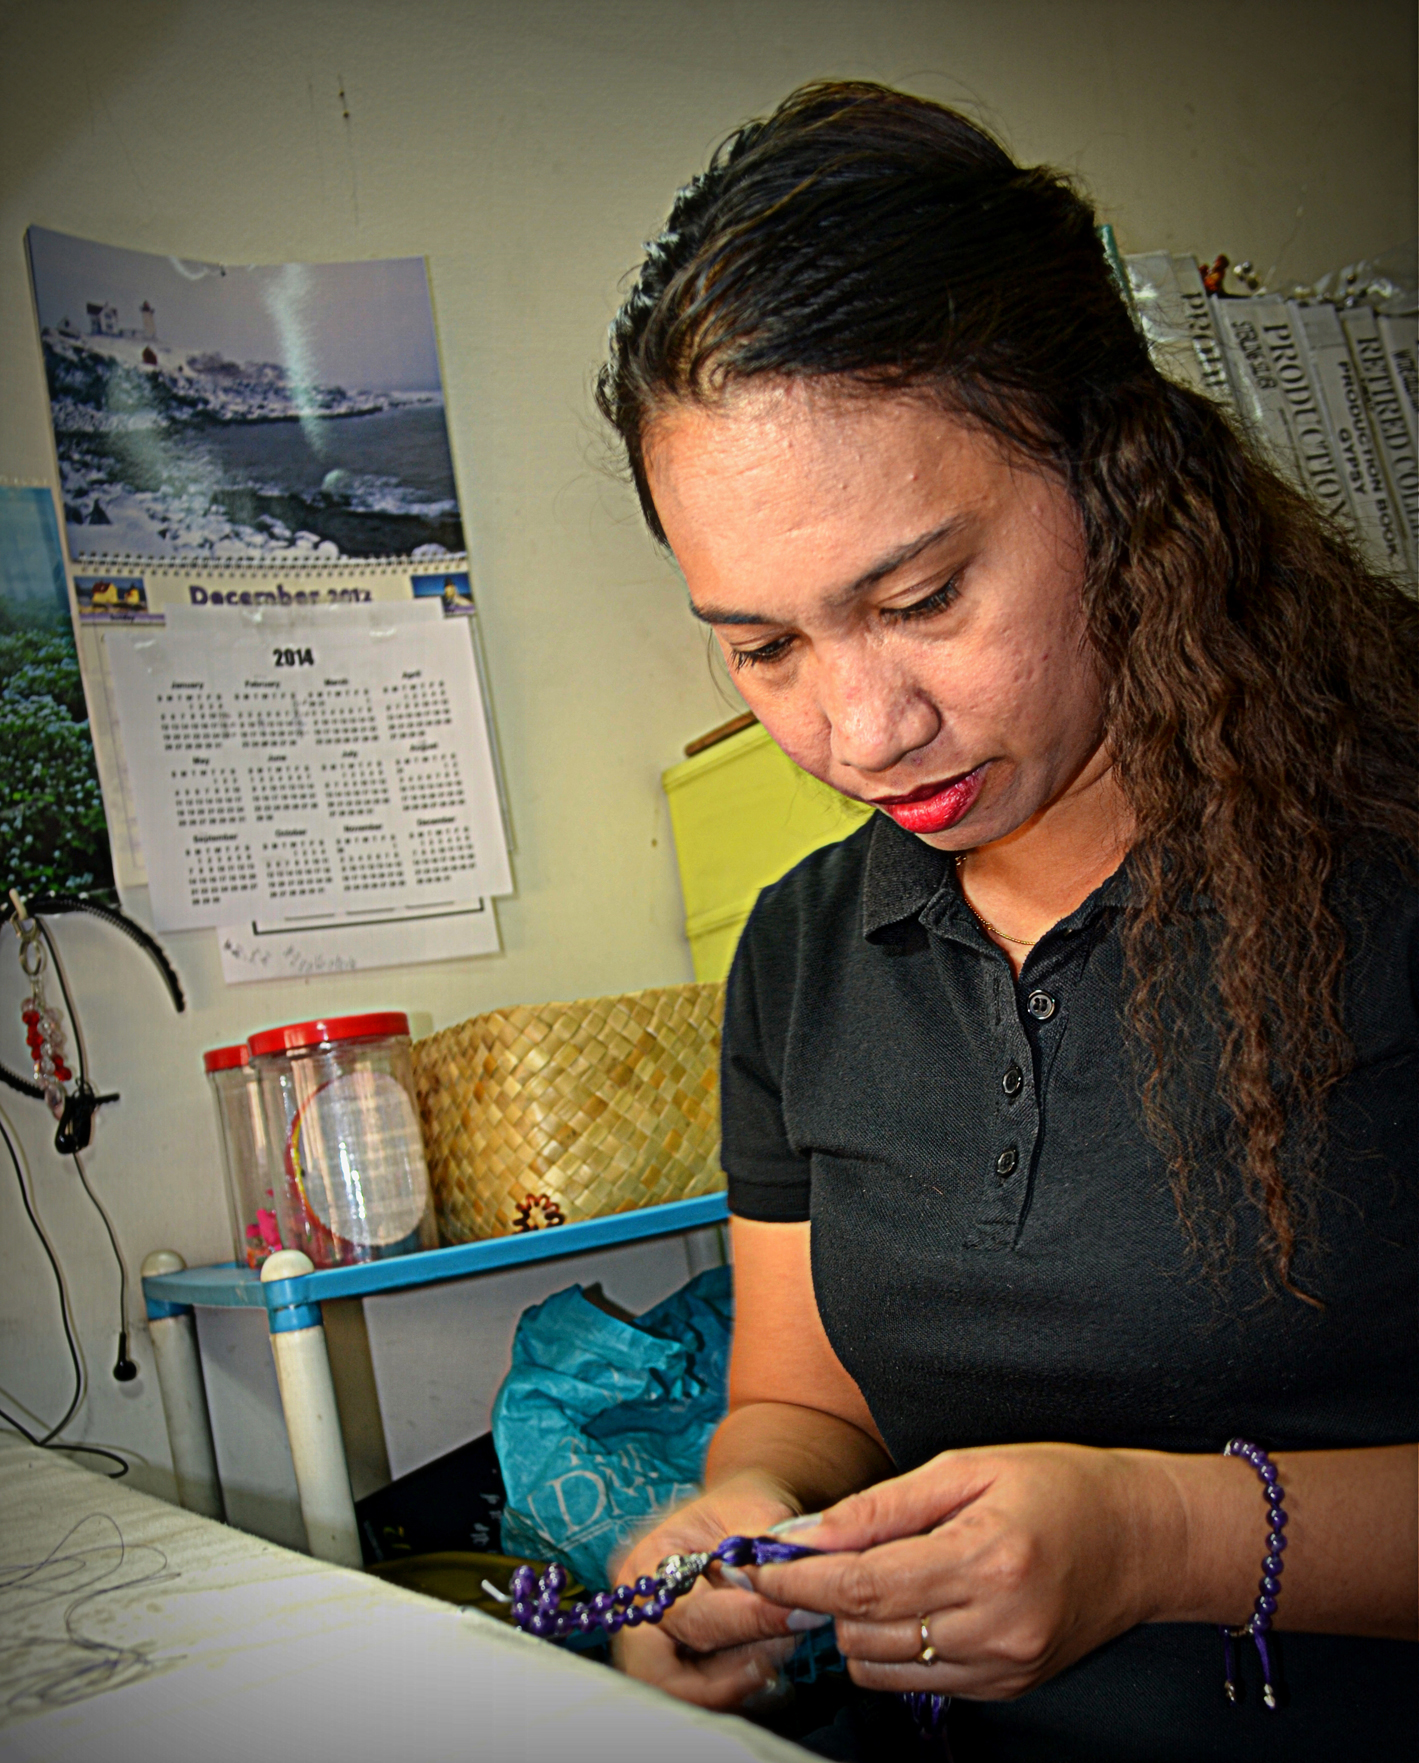 A Filipino artisan from our partnering co-op working to create mala bead necklaces for the Mala and Mantra line.